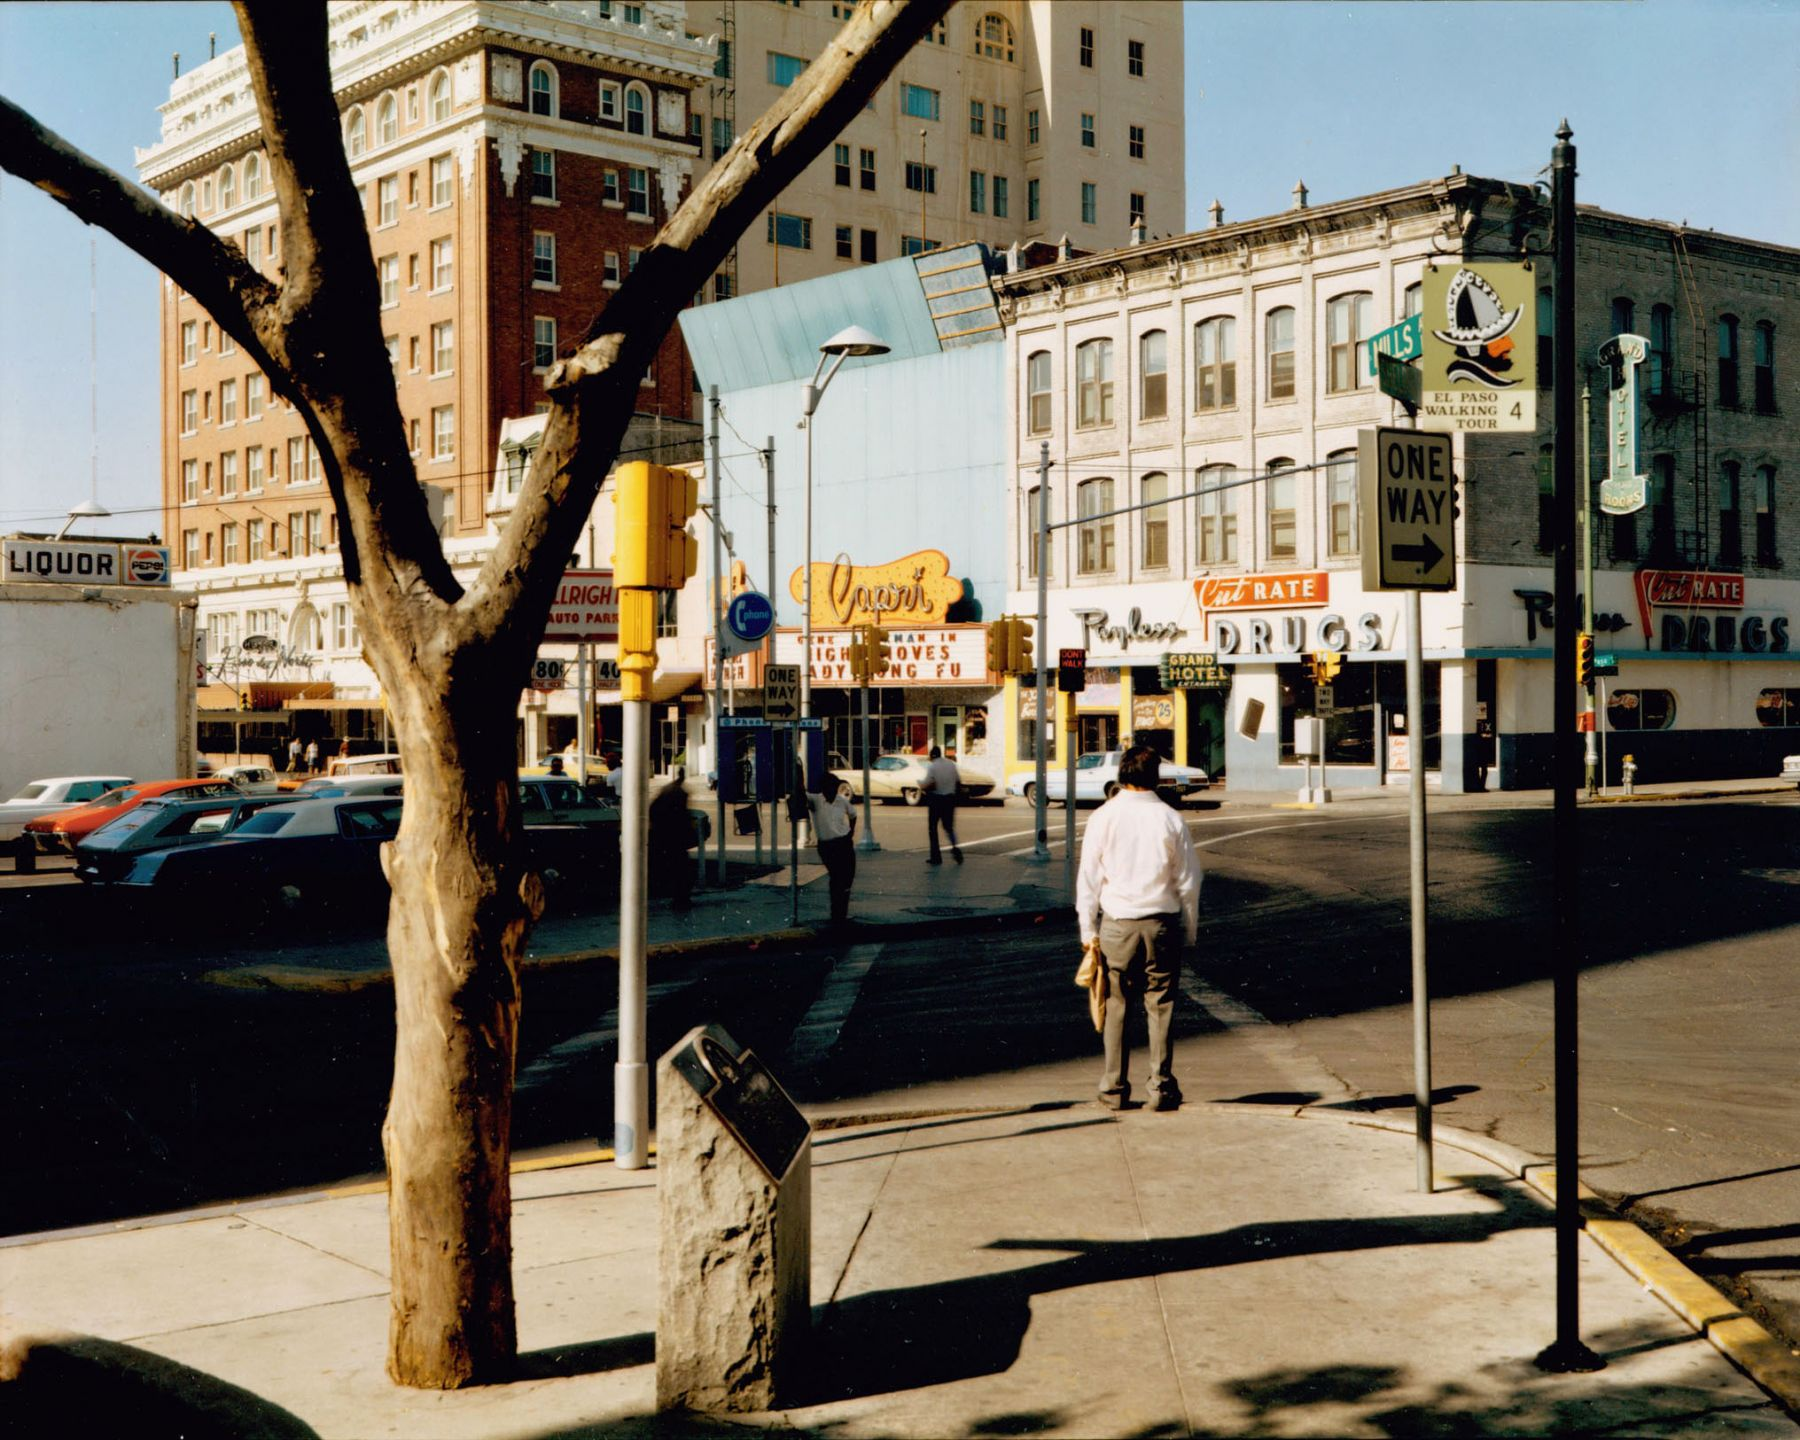 Stephen Shore, El Paso Street, El Paso, Texas, July 5, 1975